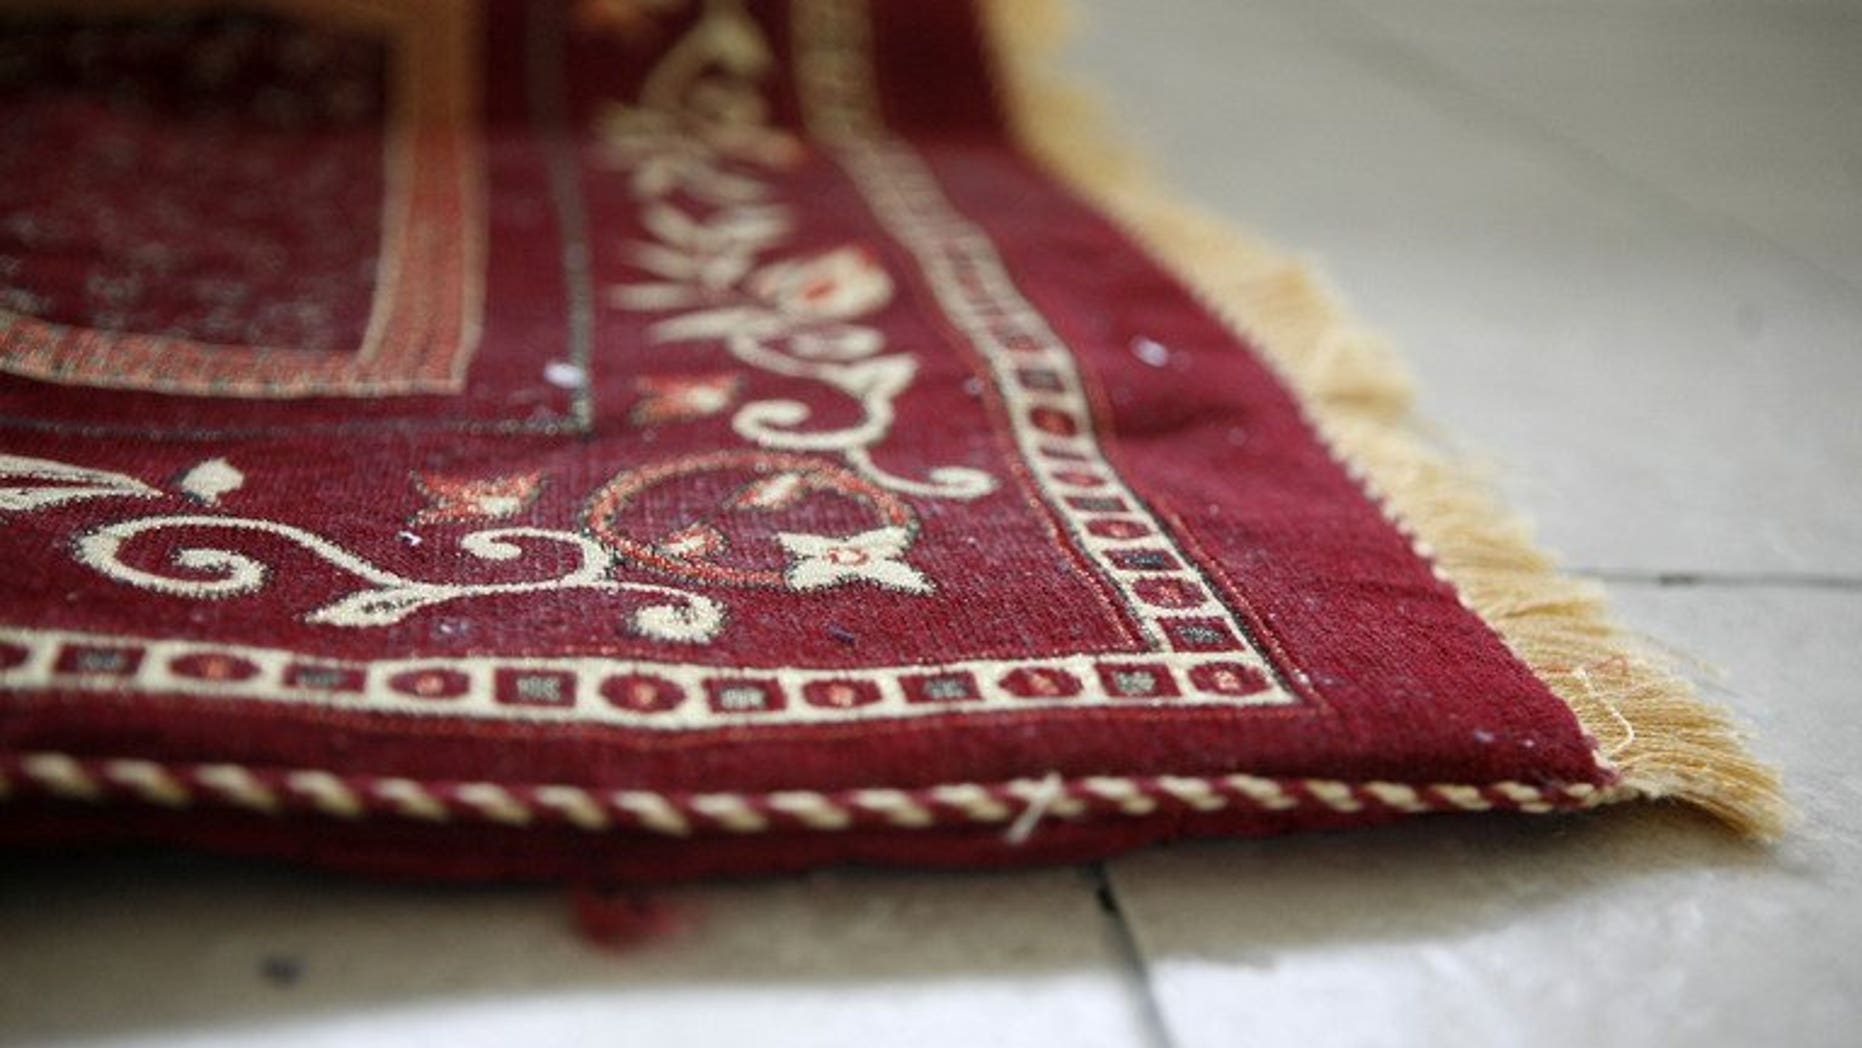 A prayer rug pictured on November 12, 2009 in Killeen, Texas. Malaysian police said Tuesday they have arrested a resort owner after he allowed Buddhists to use a Muslim prayer room in the country's latest religious controversy.